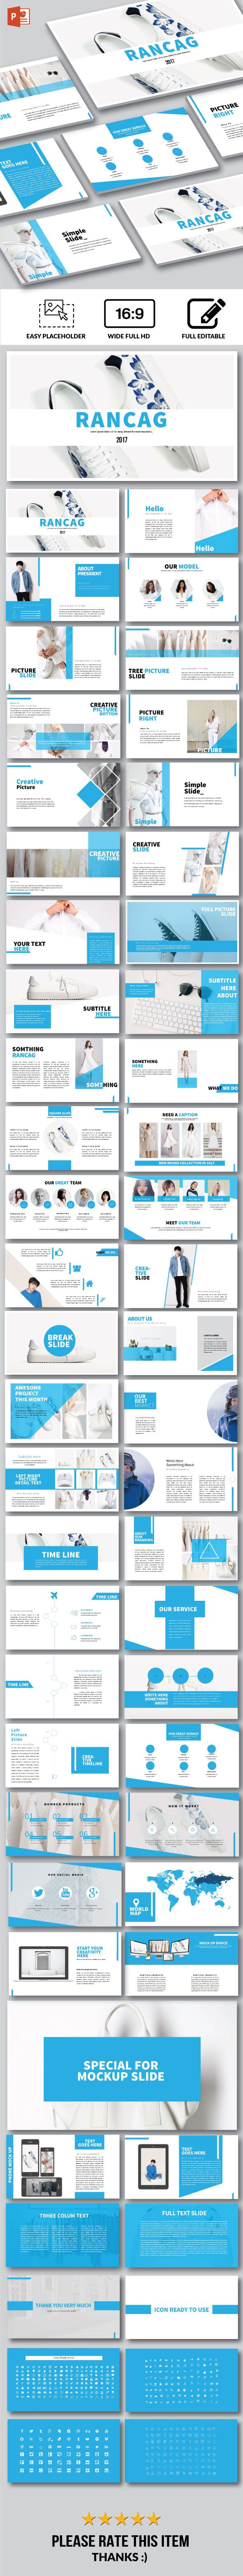 Rancag multipurpose powerpoint template apresentao rancag multipurpose powerpoint template toneelgroepblik